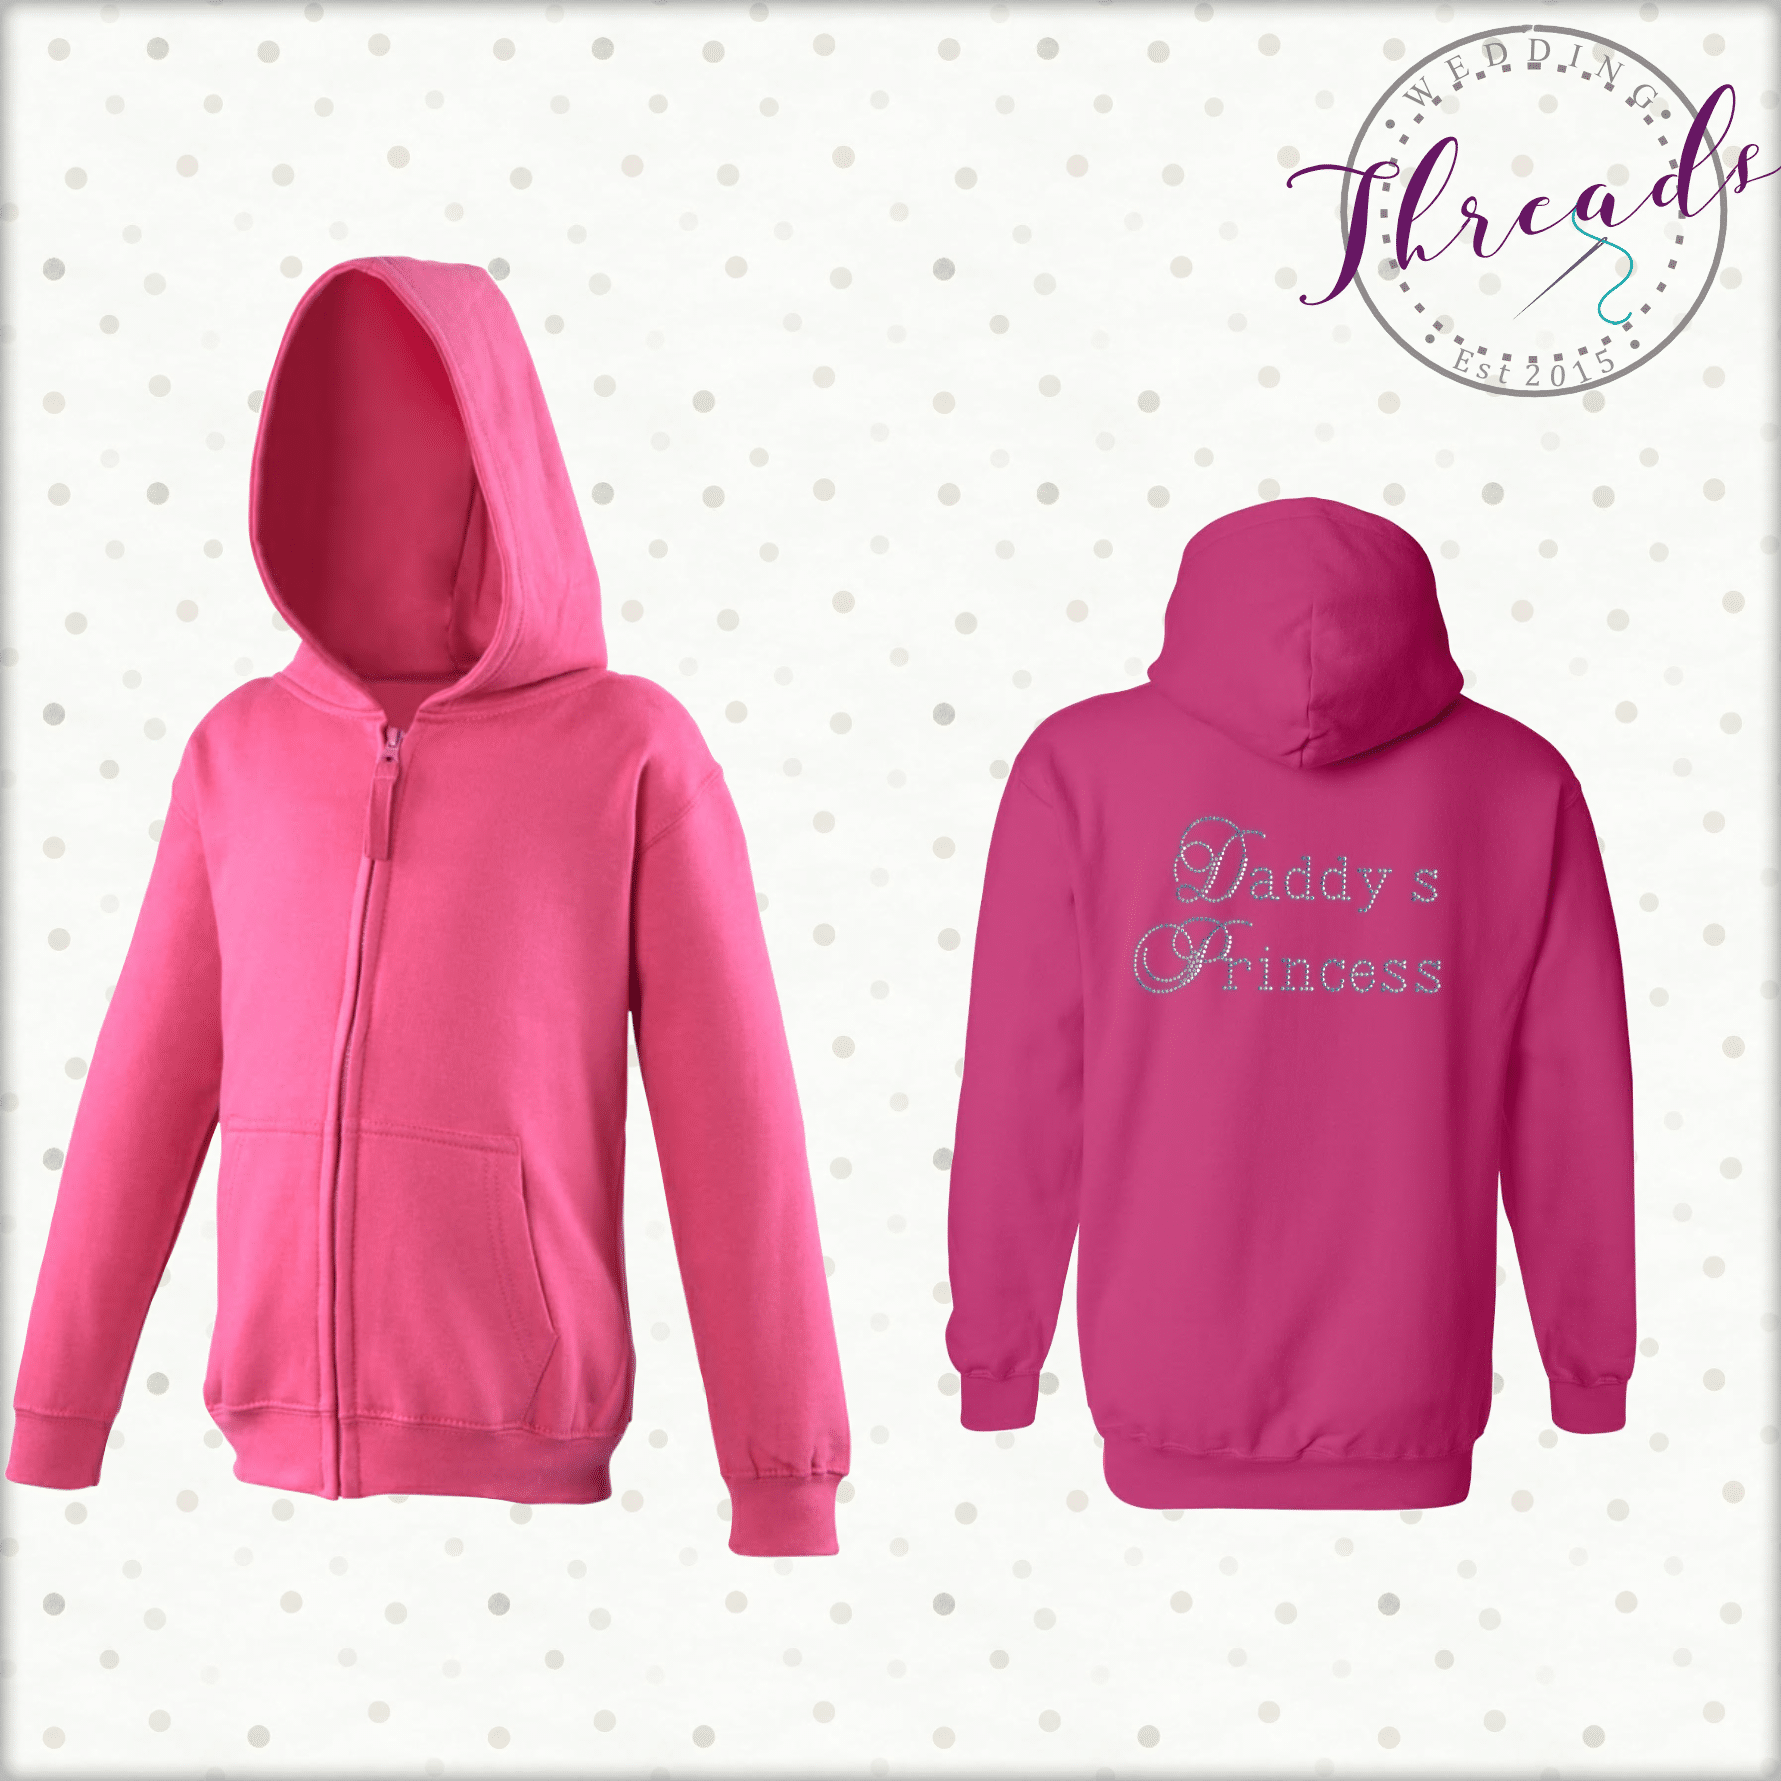 Childrens Zipped Sweatshirt Hoodie